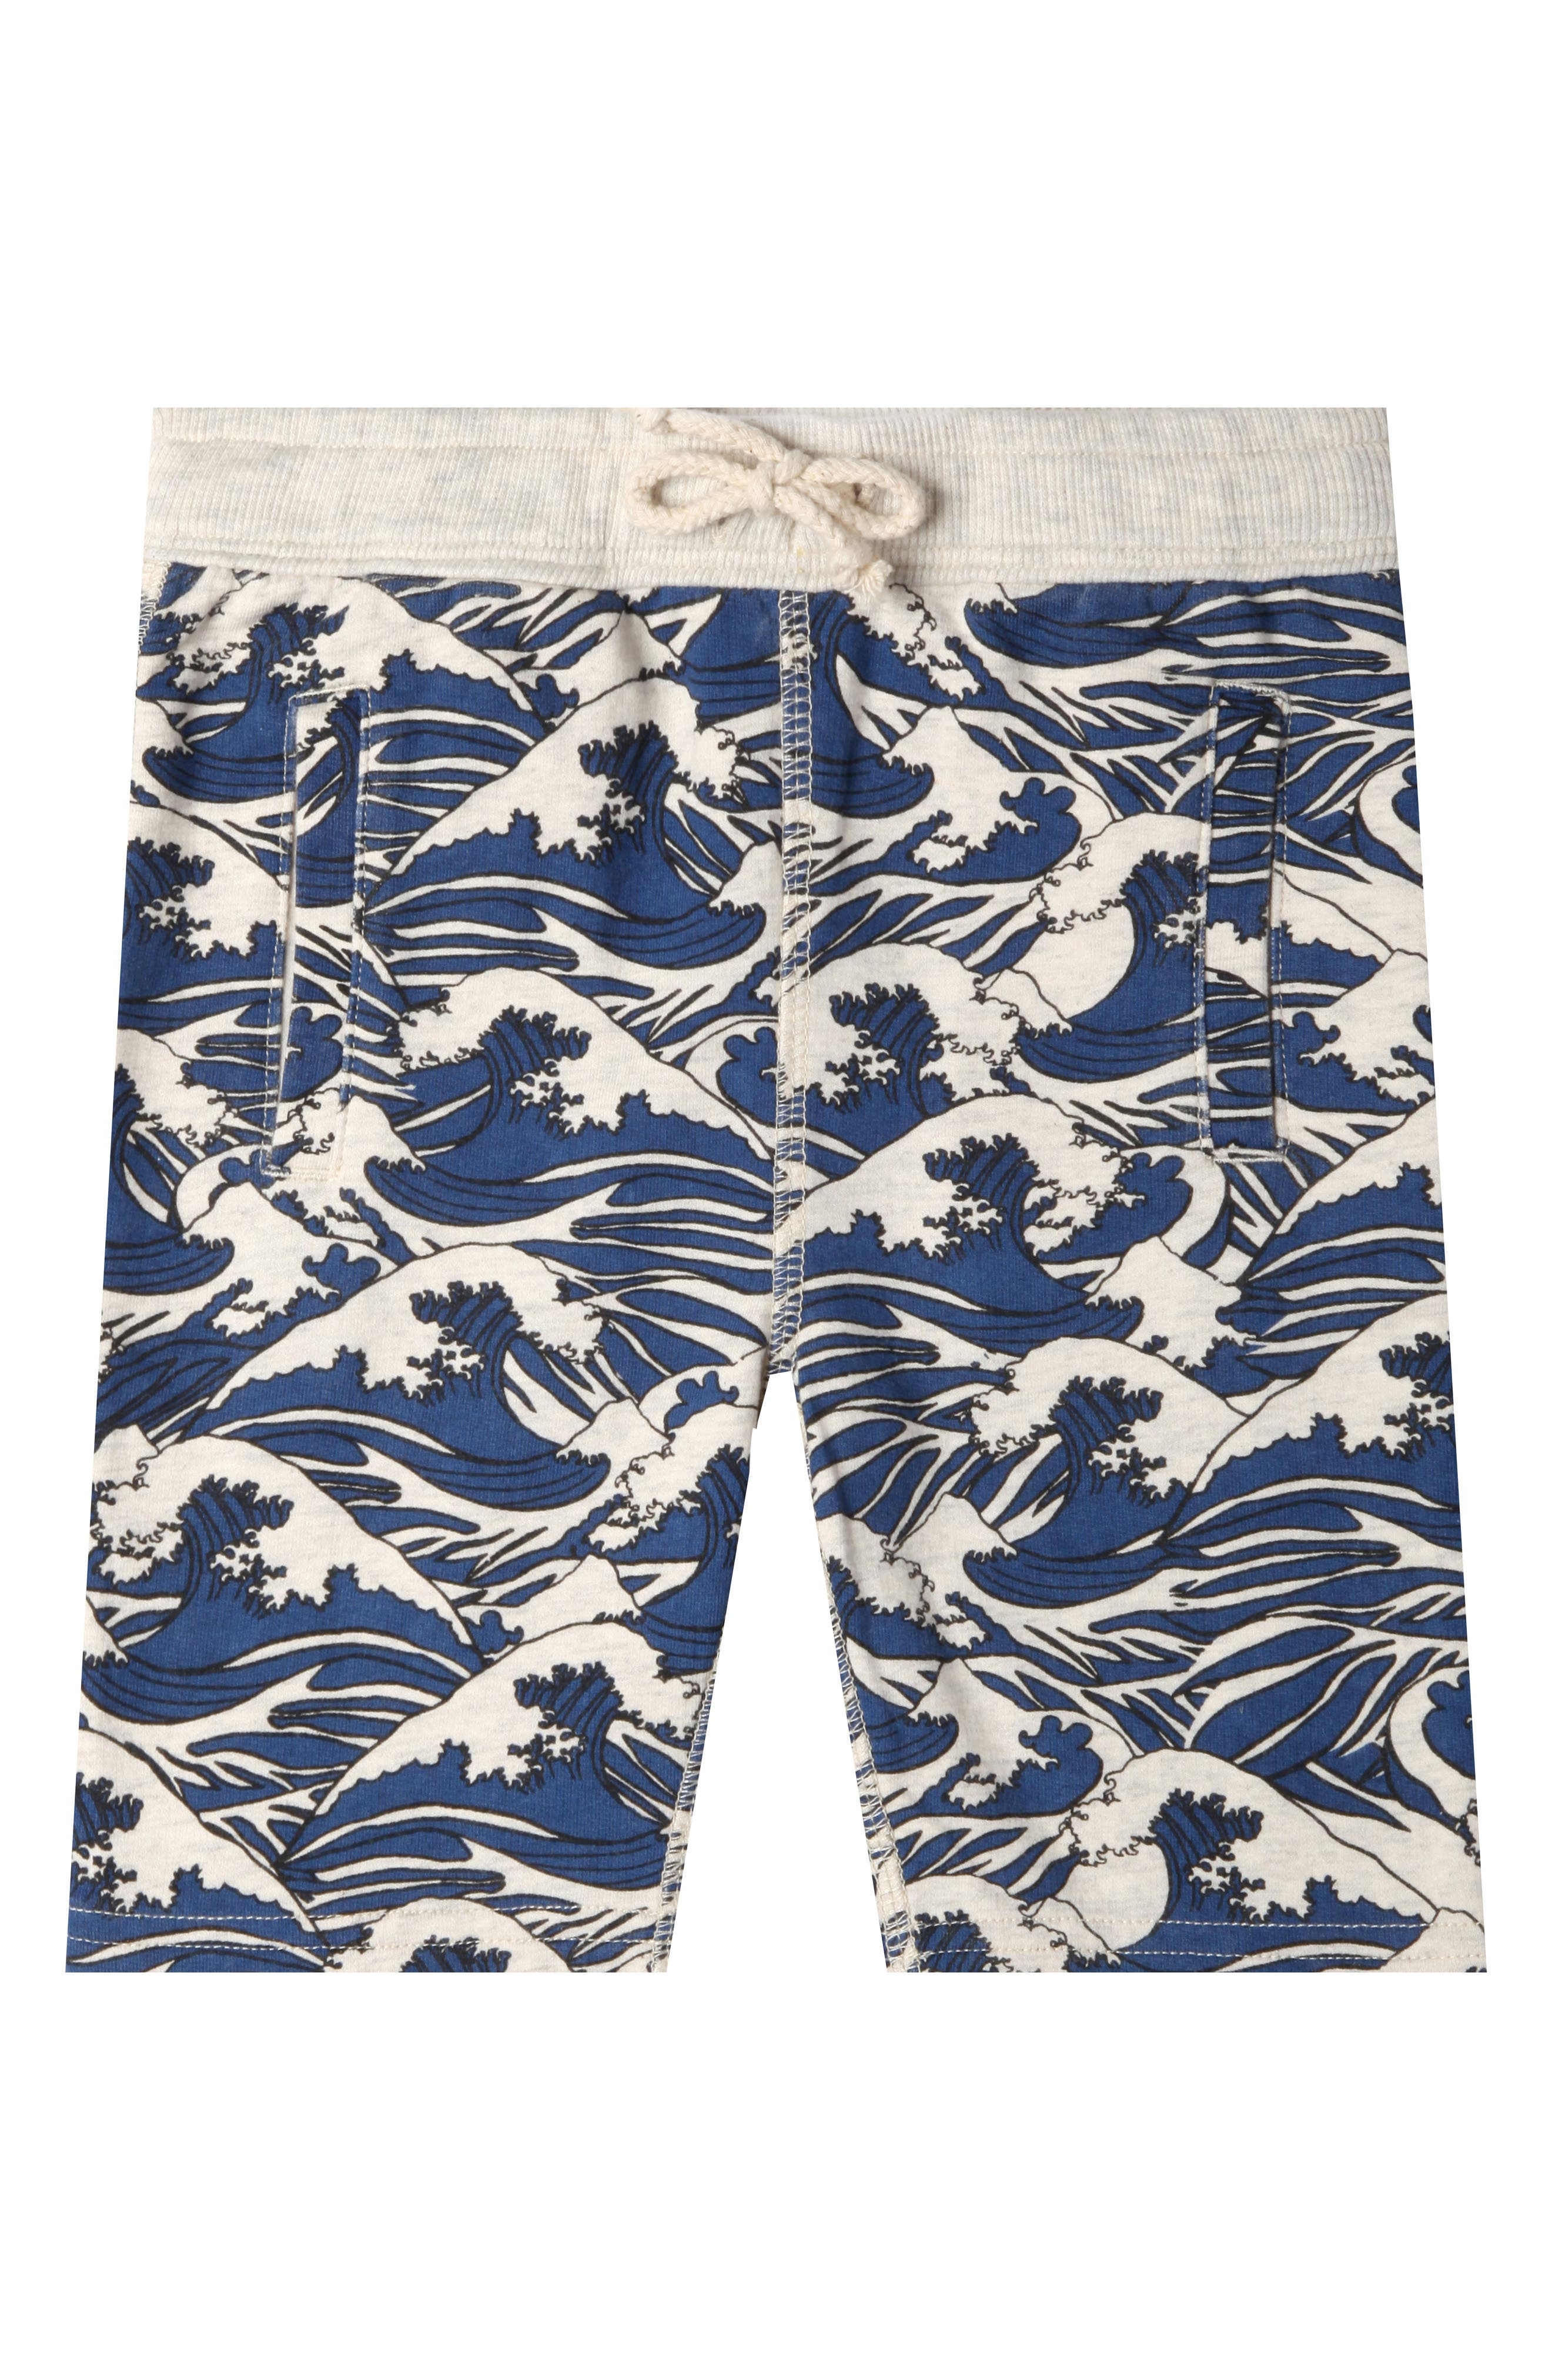 Art & Eden Lucas Waves Organic Cotton Shorts (Baby Boys)